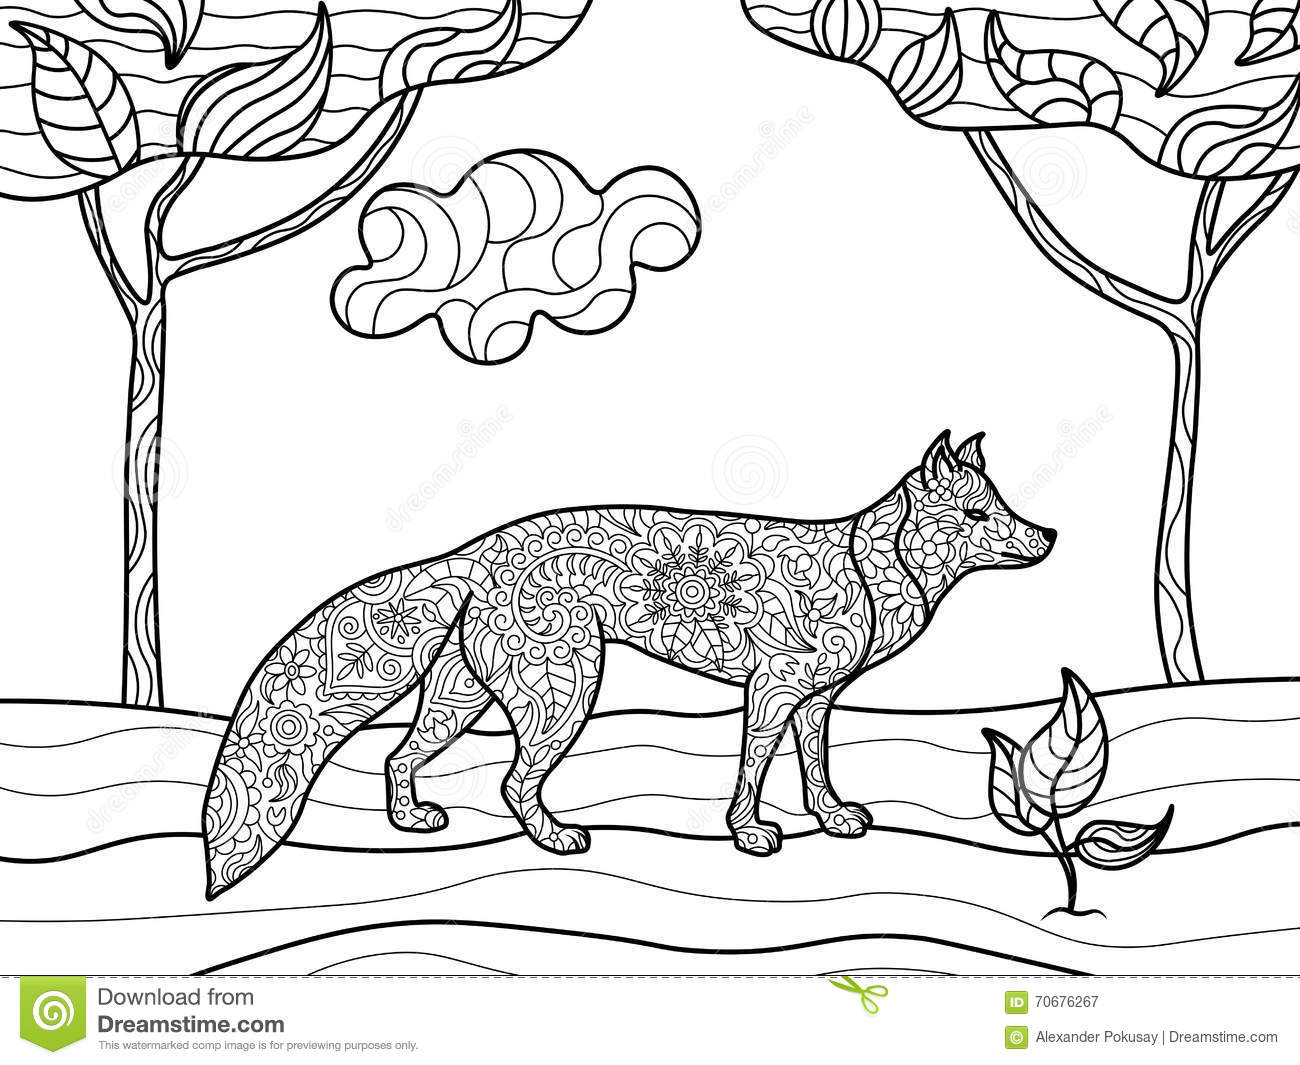 Fox Coloring Book For Adults Vector Stock Vector - Illustration of ...